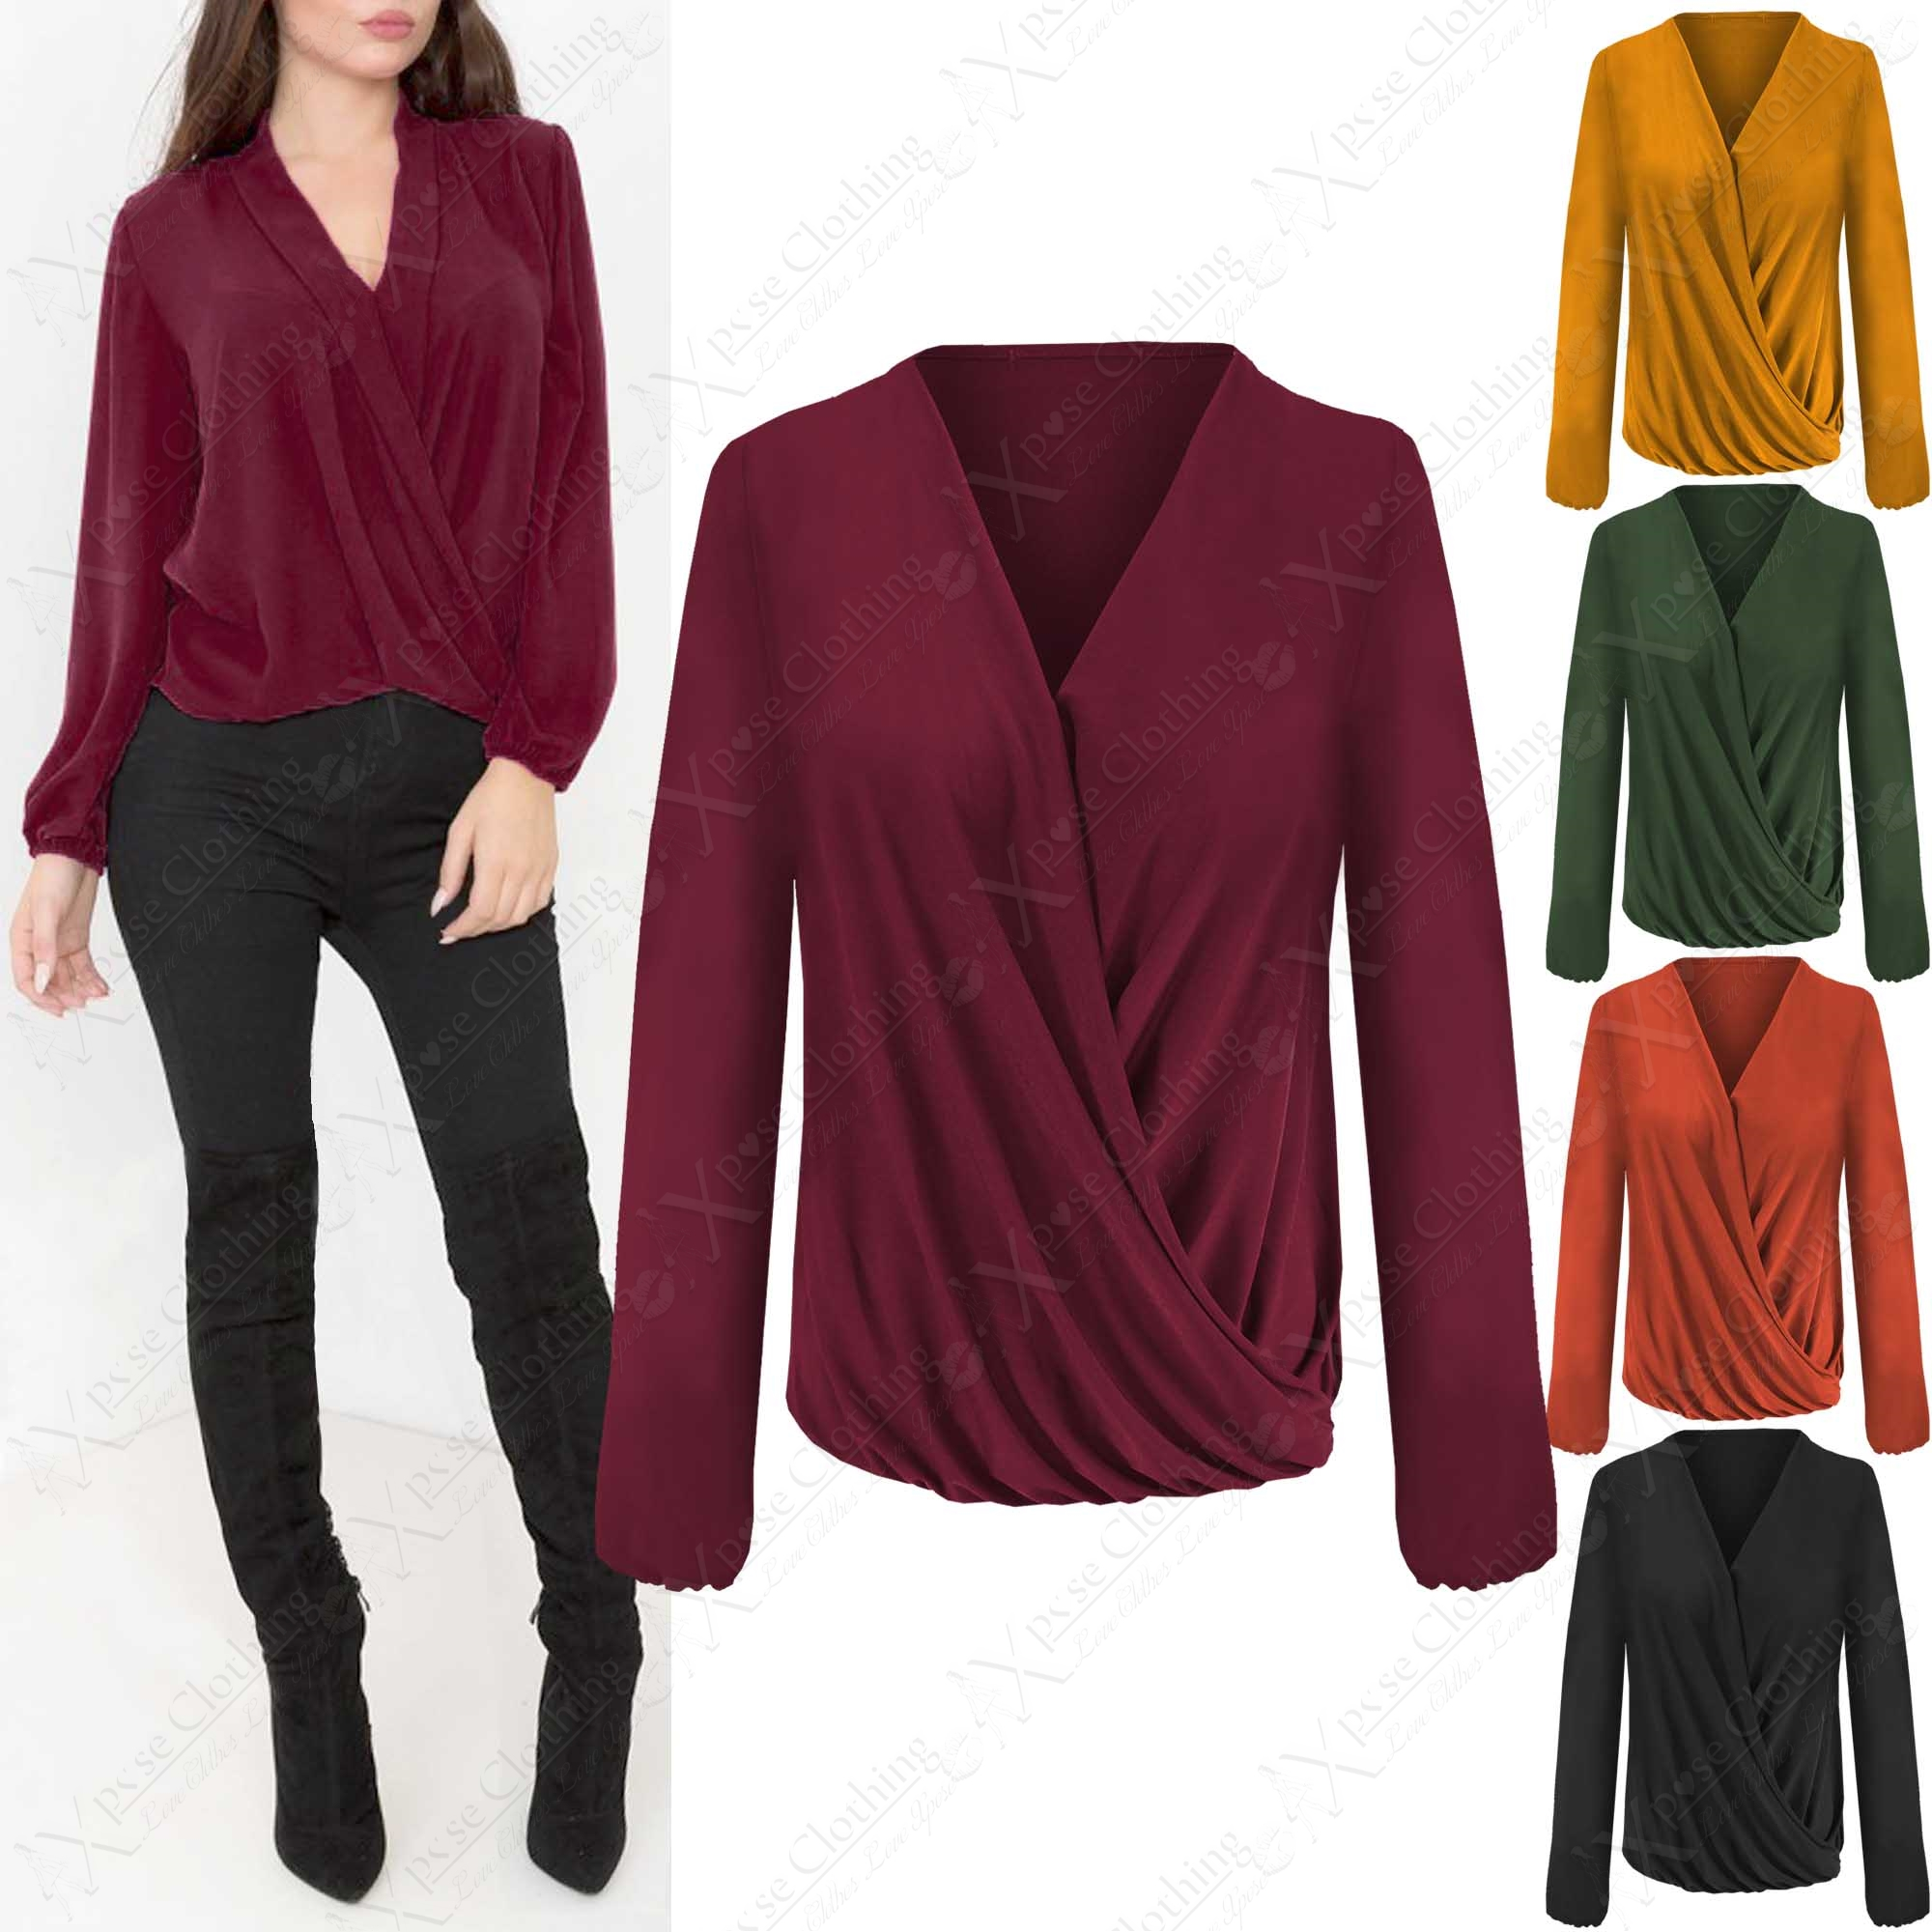 Ladies Wrap Blouses